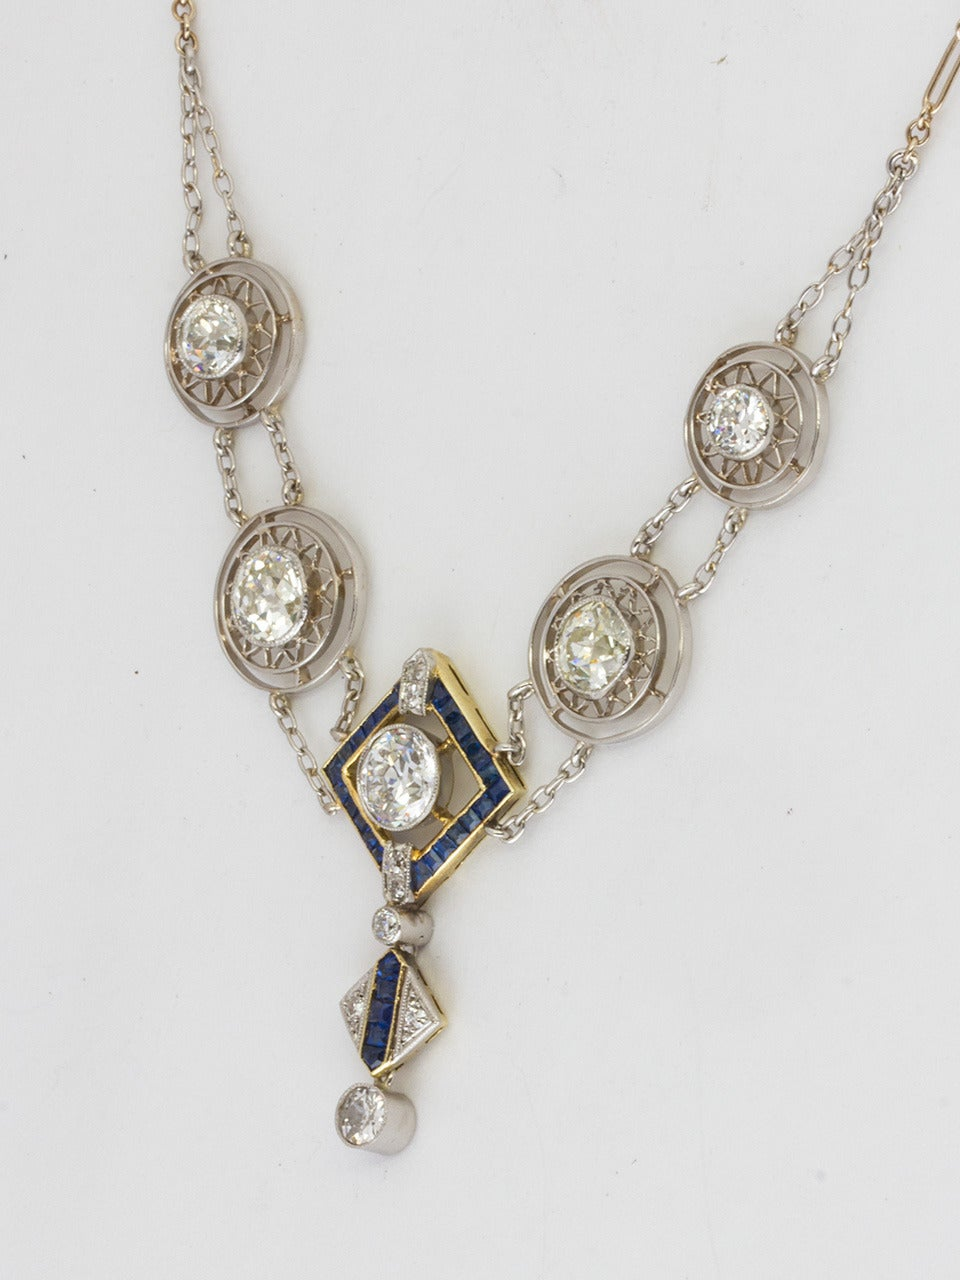 1920s Art Deco 3.50 Carat Platinum 18 Karat and Diamond Lavalier Necklace 4